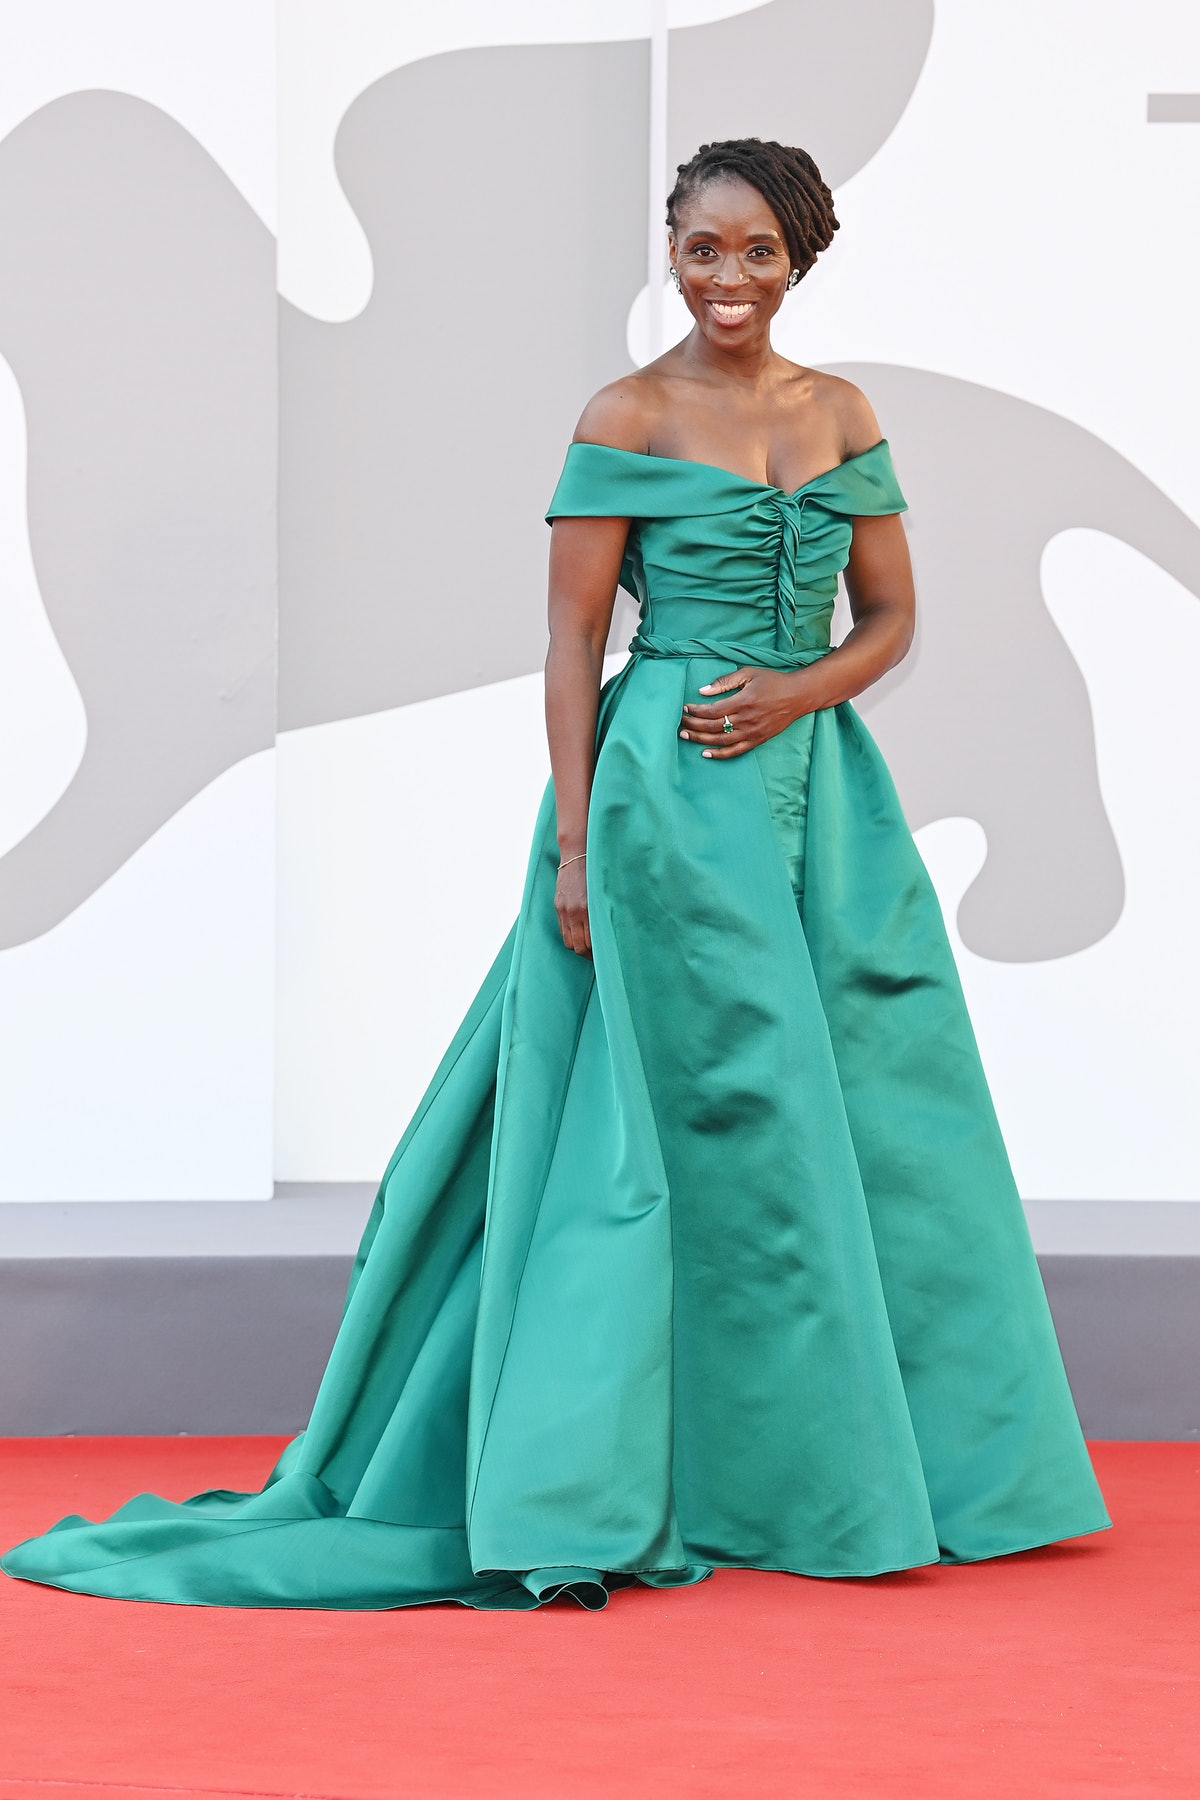 Sharon Duncan-Brewster wore an emerald off-the-shoulder gown to the Venice Film Festival in Venice, ...